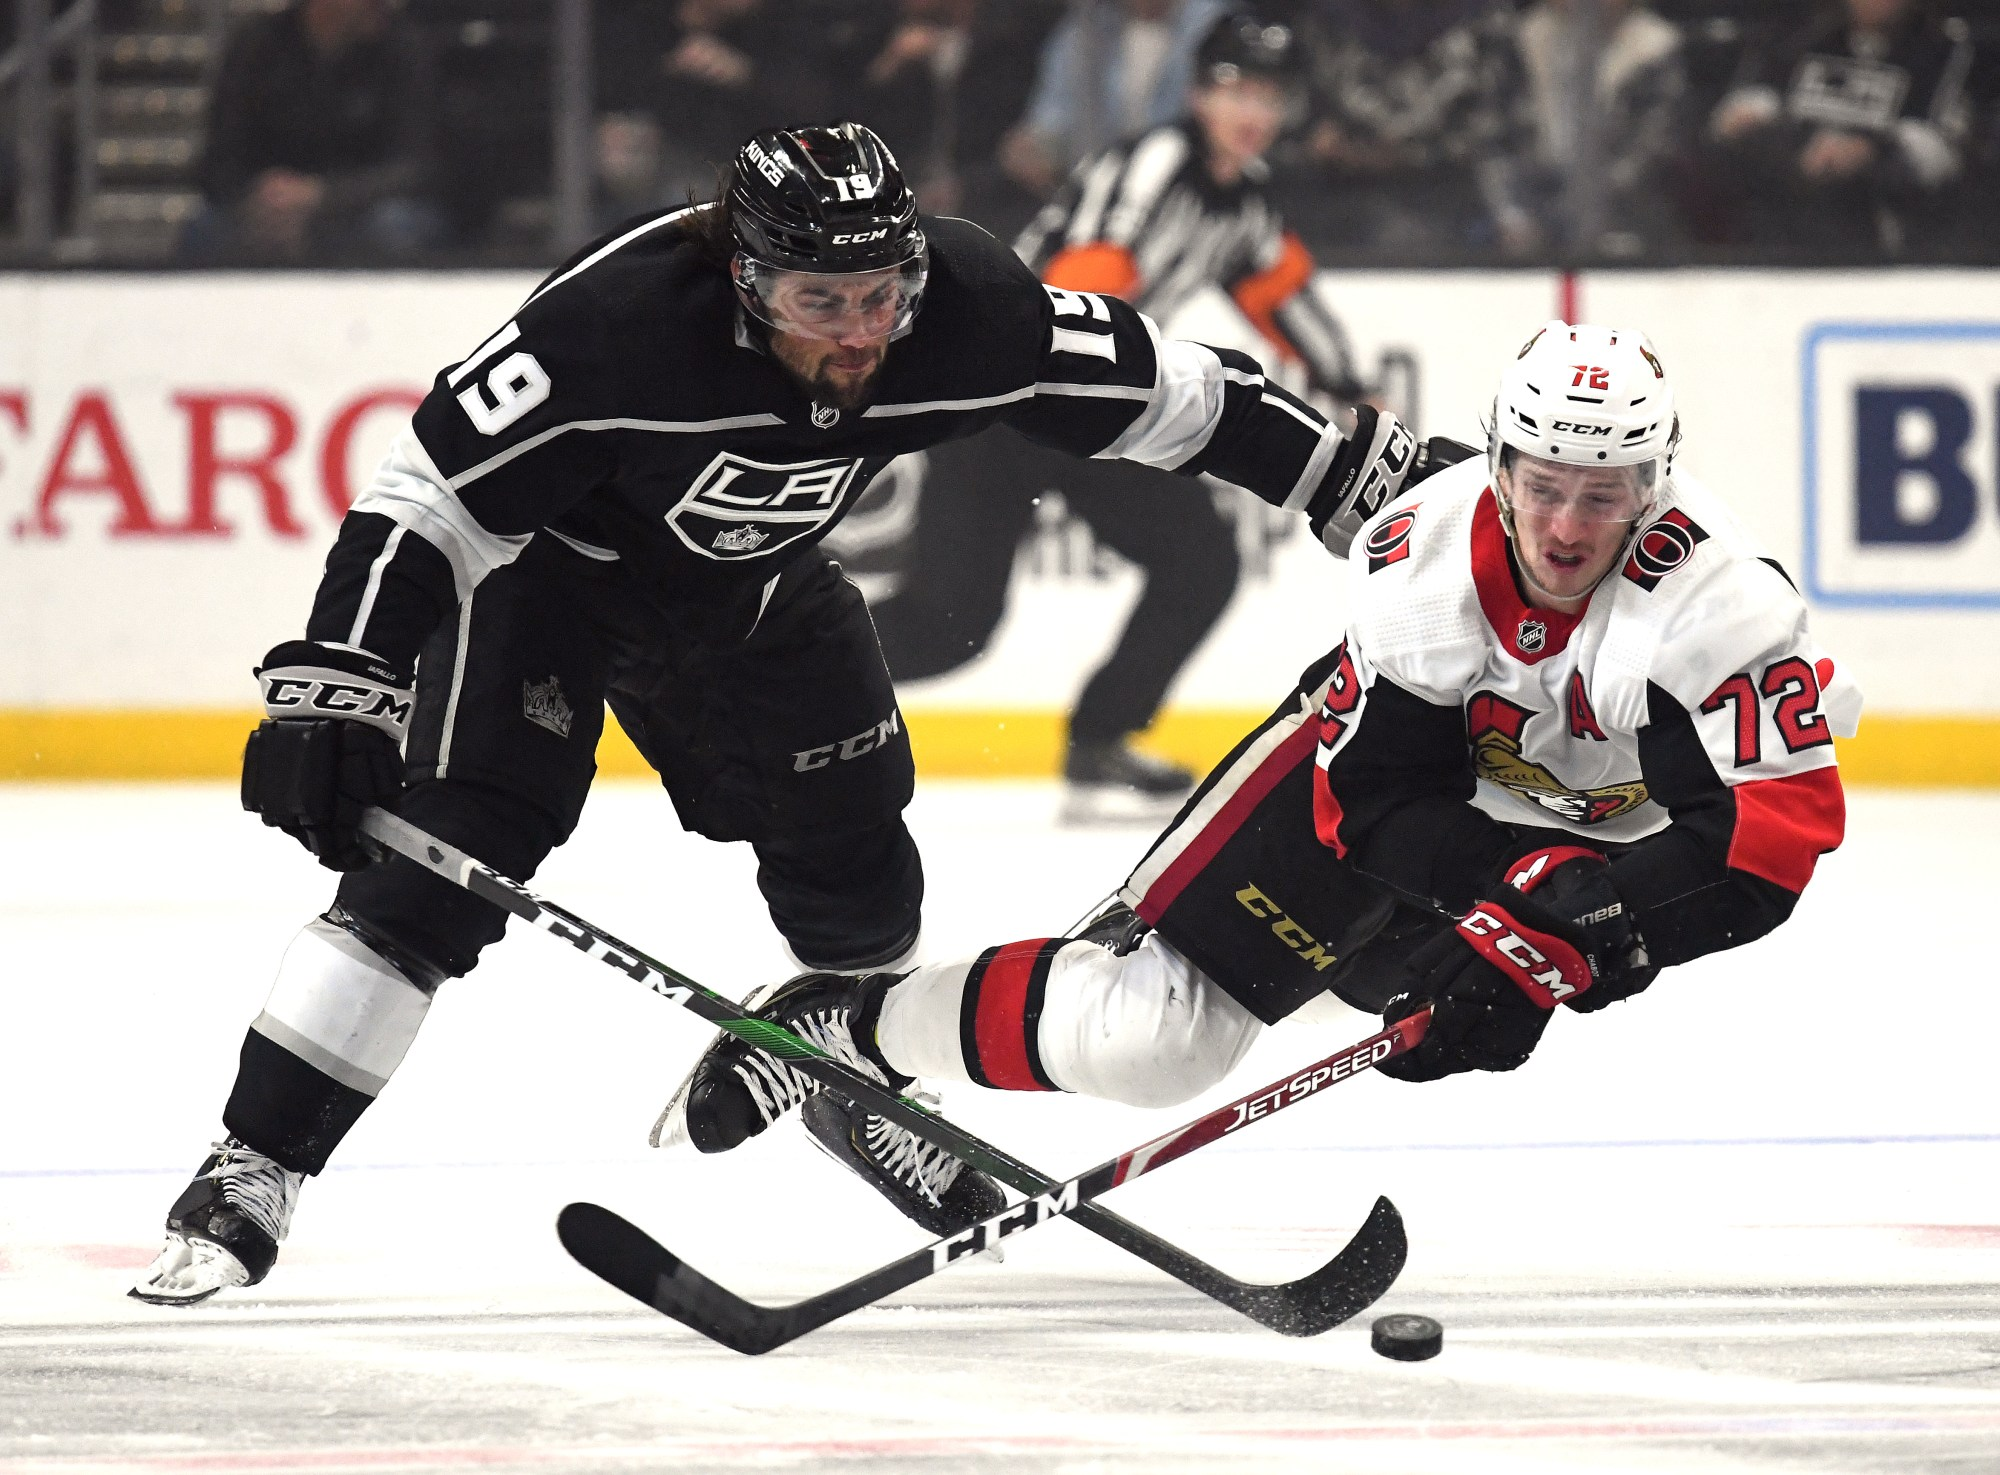 Thomas Chabot of the Ottawa Senators dives for a puck in front of Alex Iafallo of the Los Angeles Kings during the second period at Staples Center on March 11, 2020. (Harry How/Getty Images)